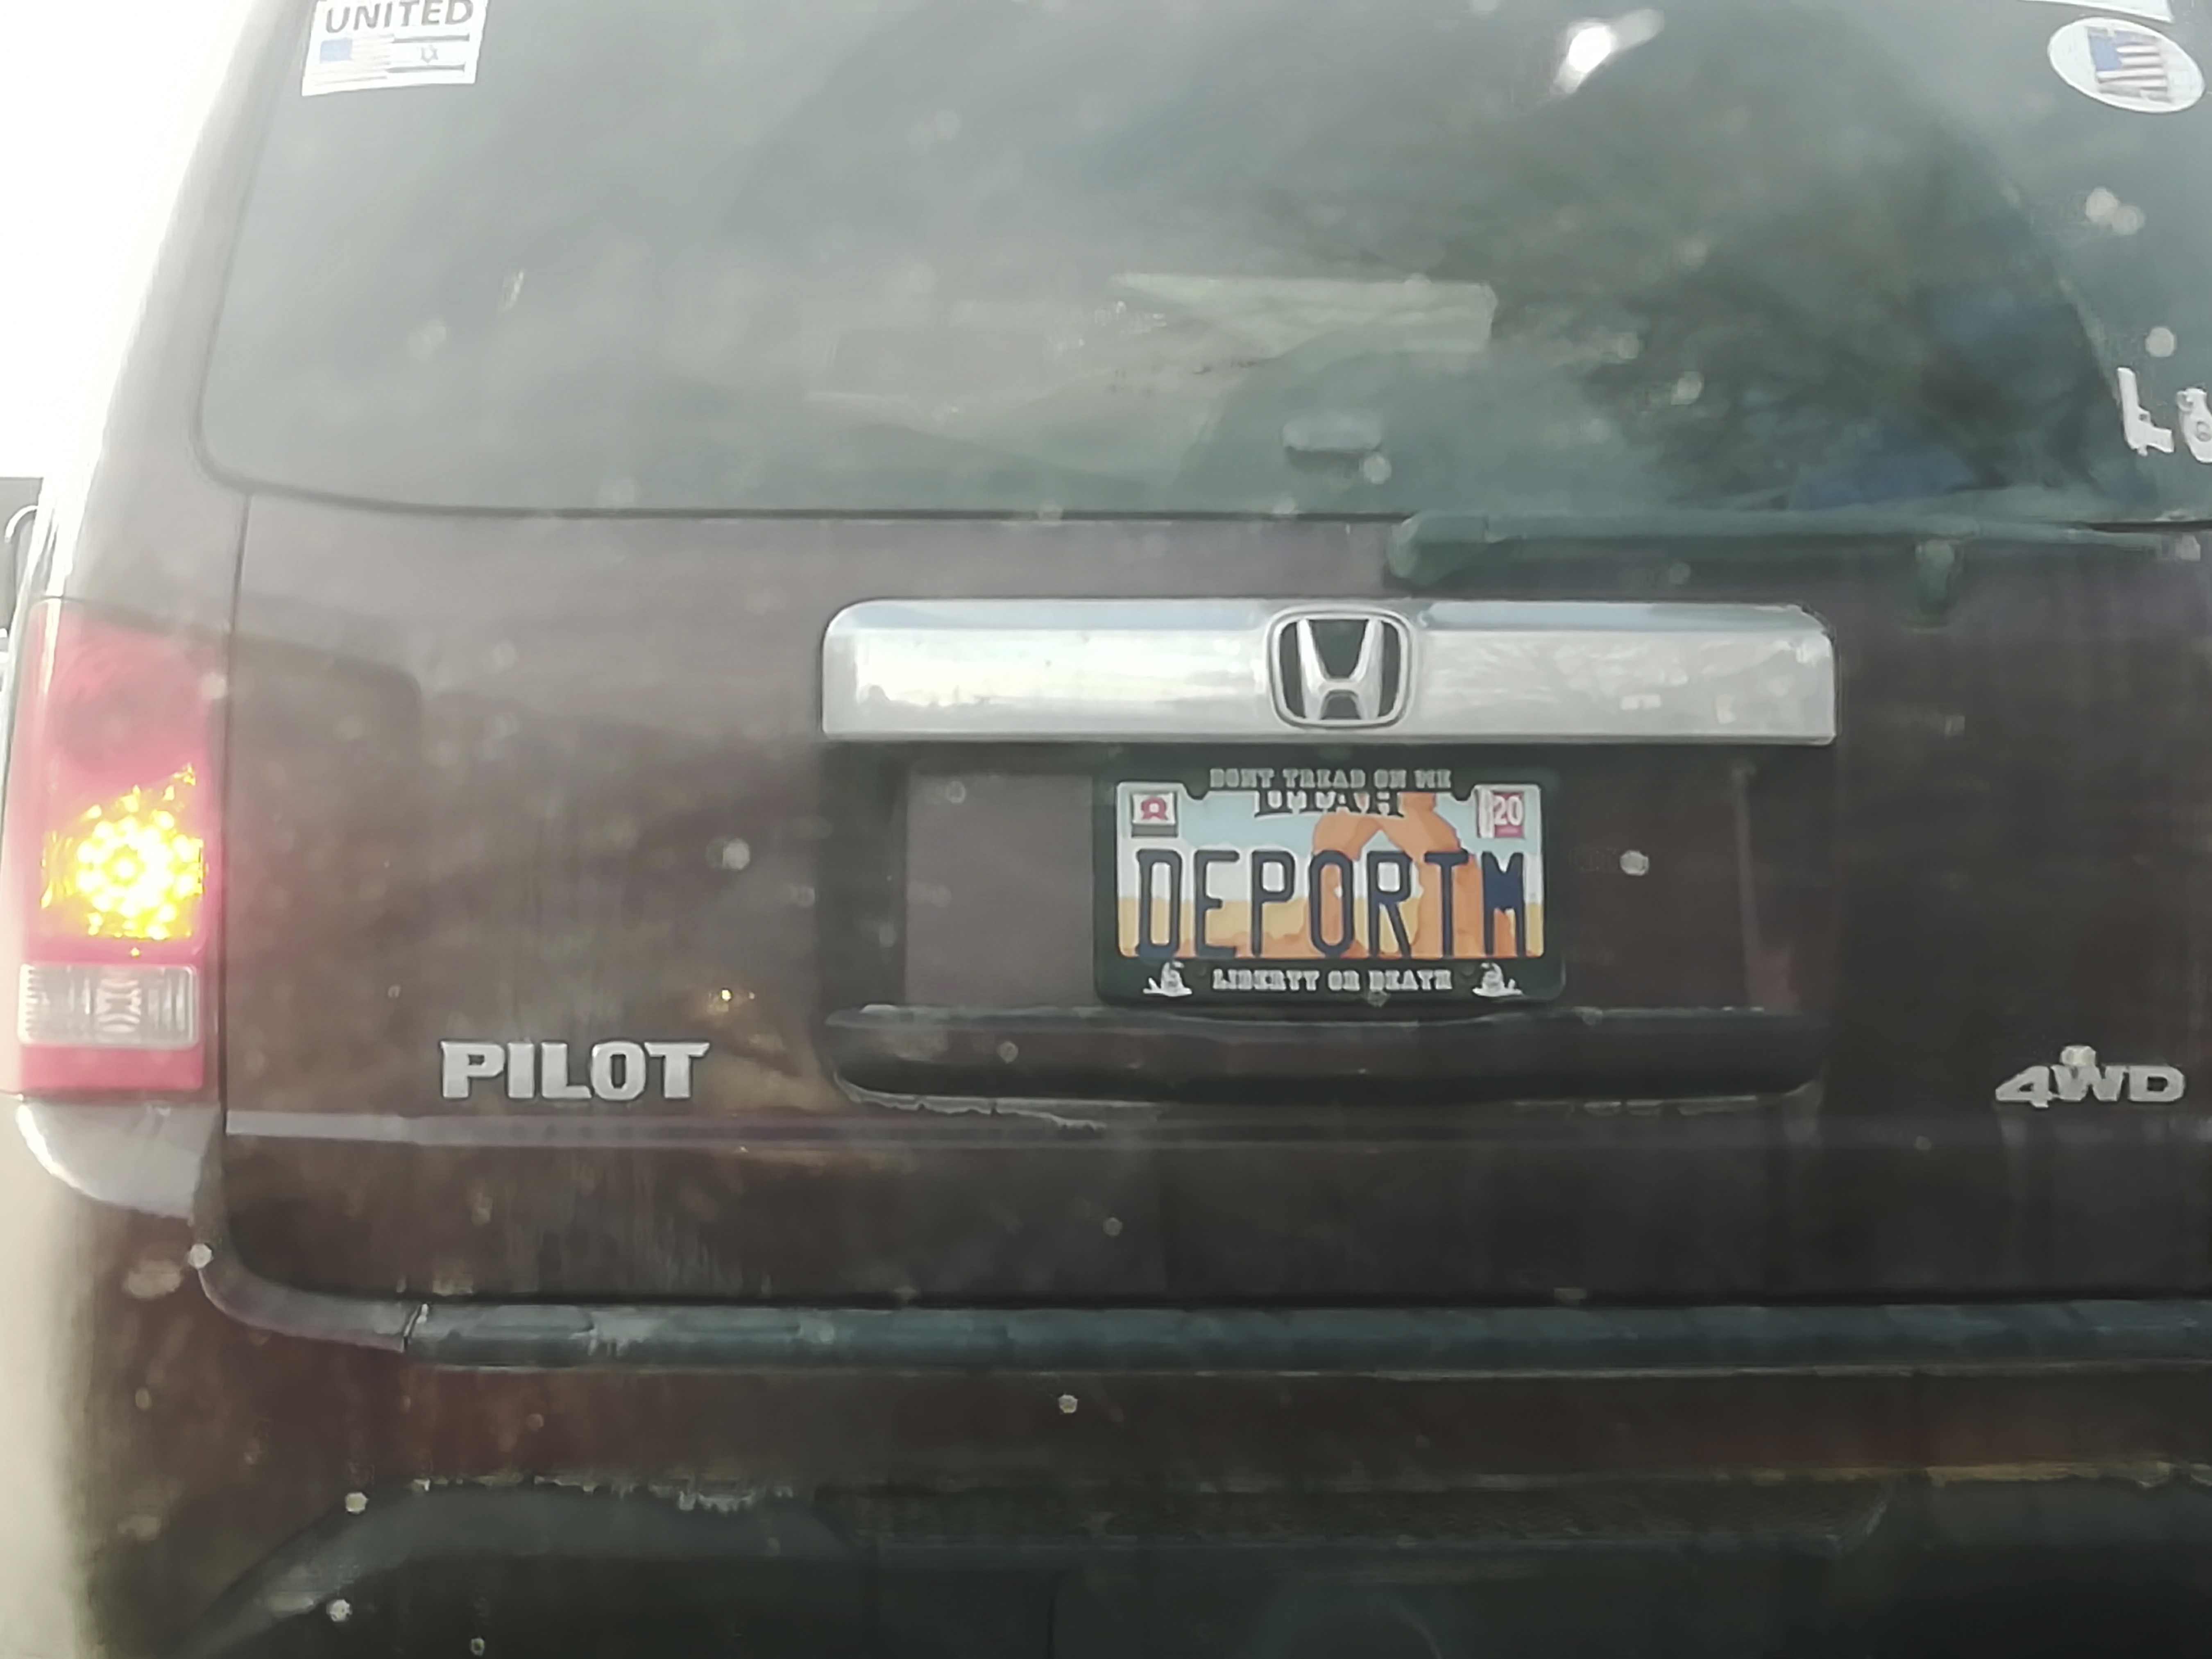 This photo, provided by Matt Pacenza, shows a license plate reading  DEPORTM  on a vehicle registered in Utah.